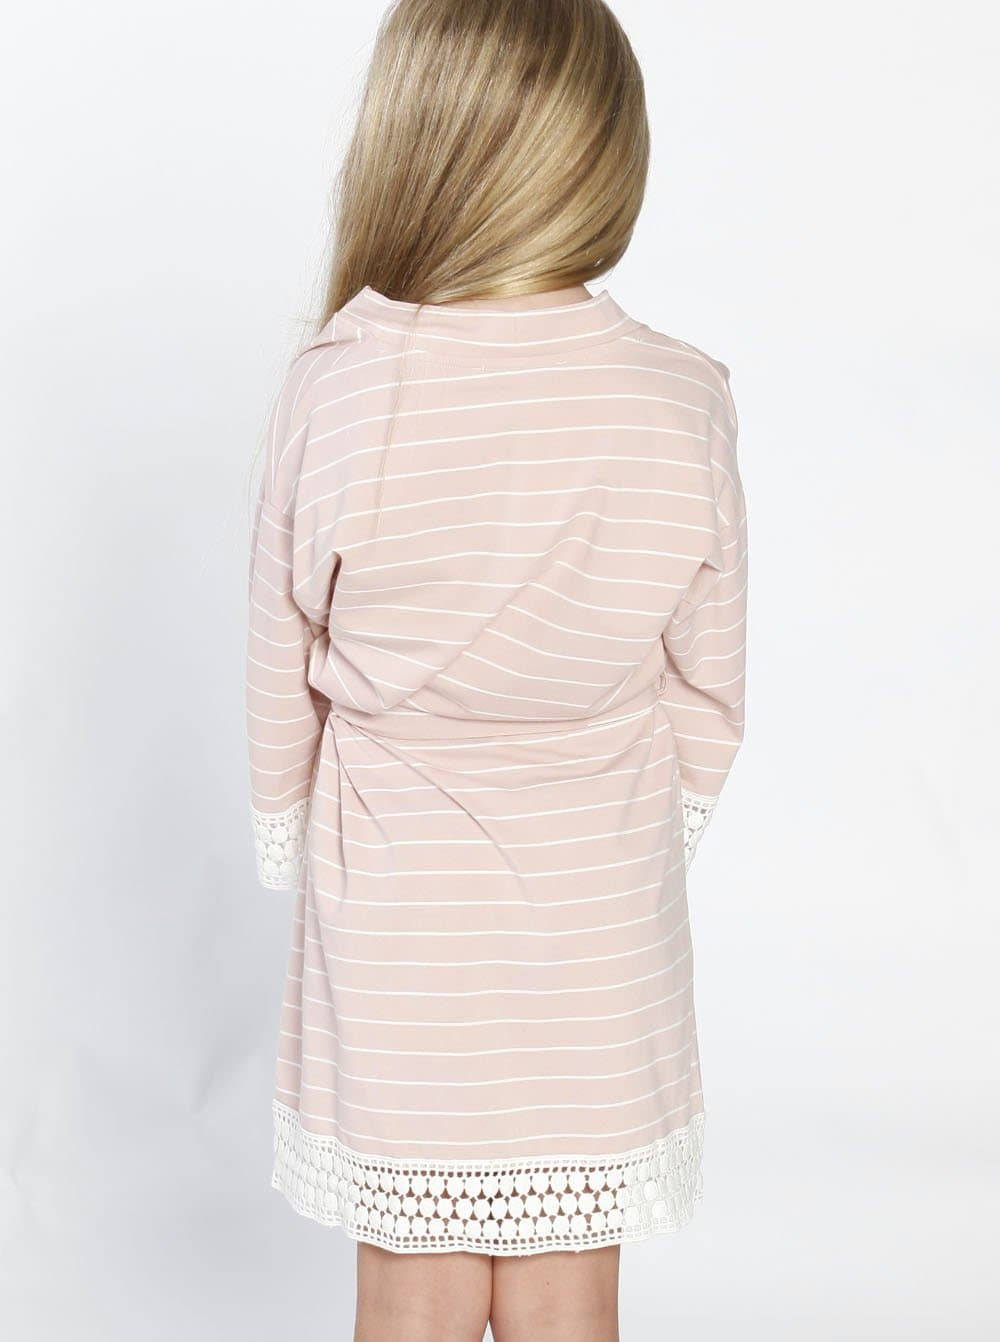 Ruby Joy Daughter Robe - Light Pink Stripes back